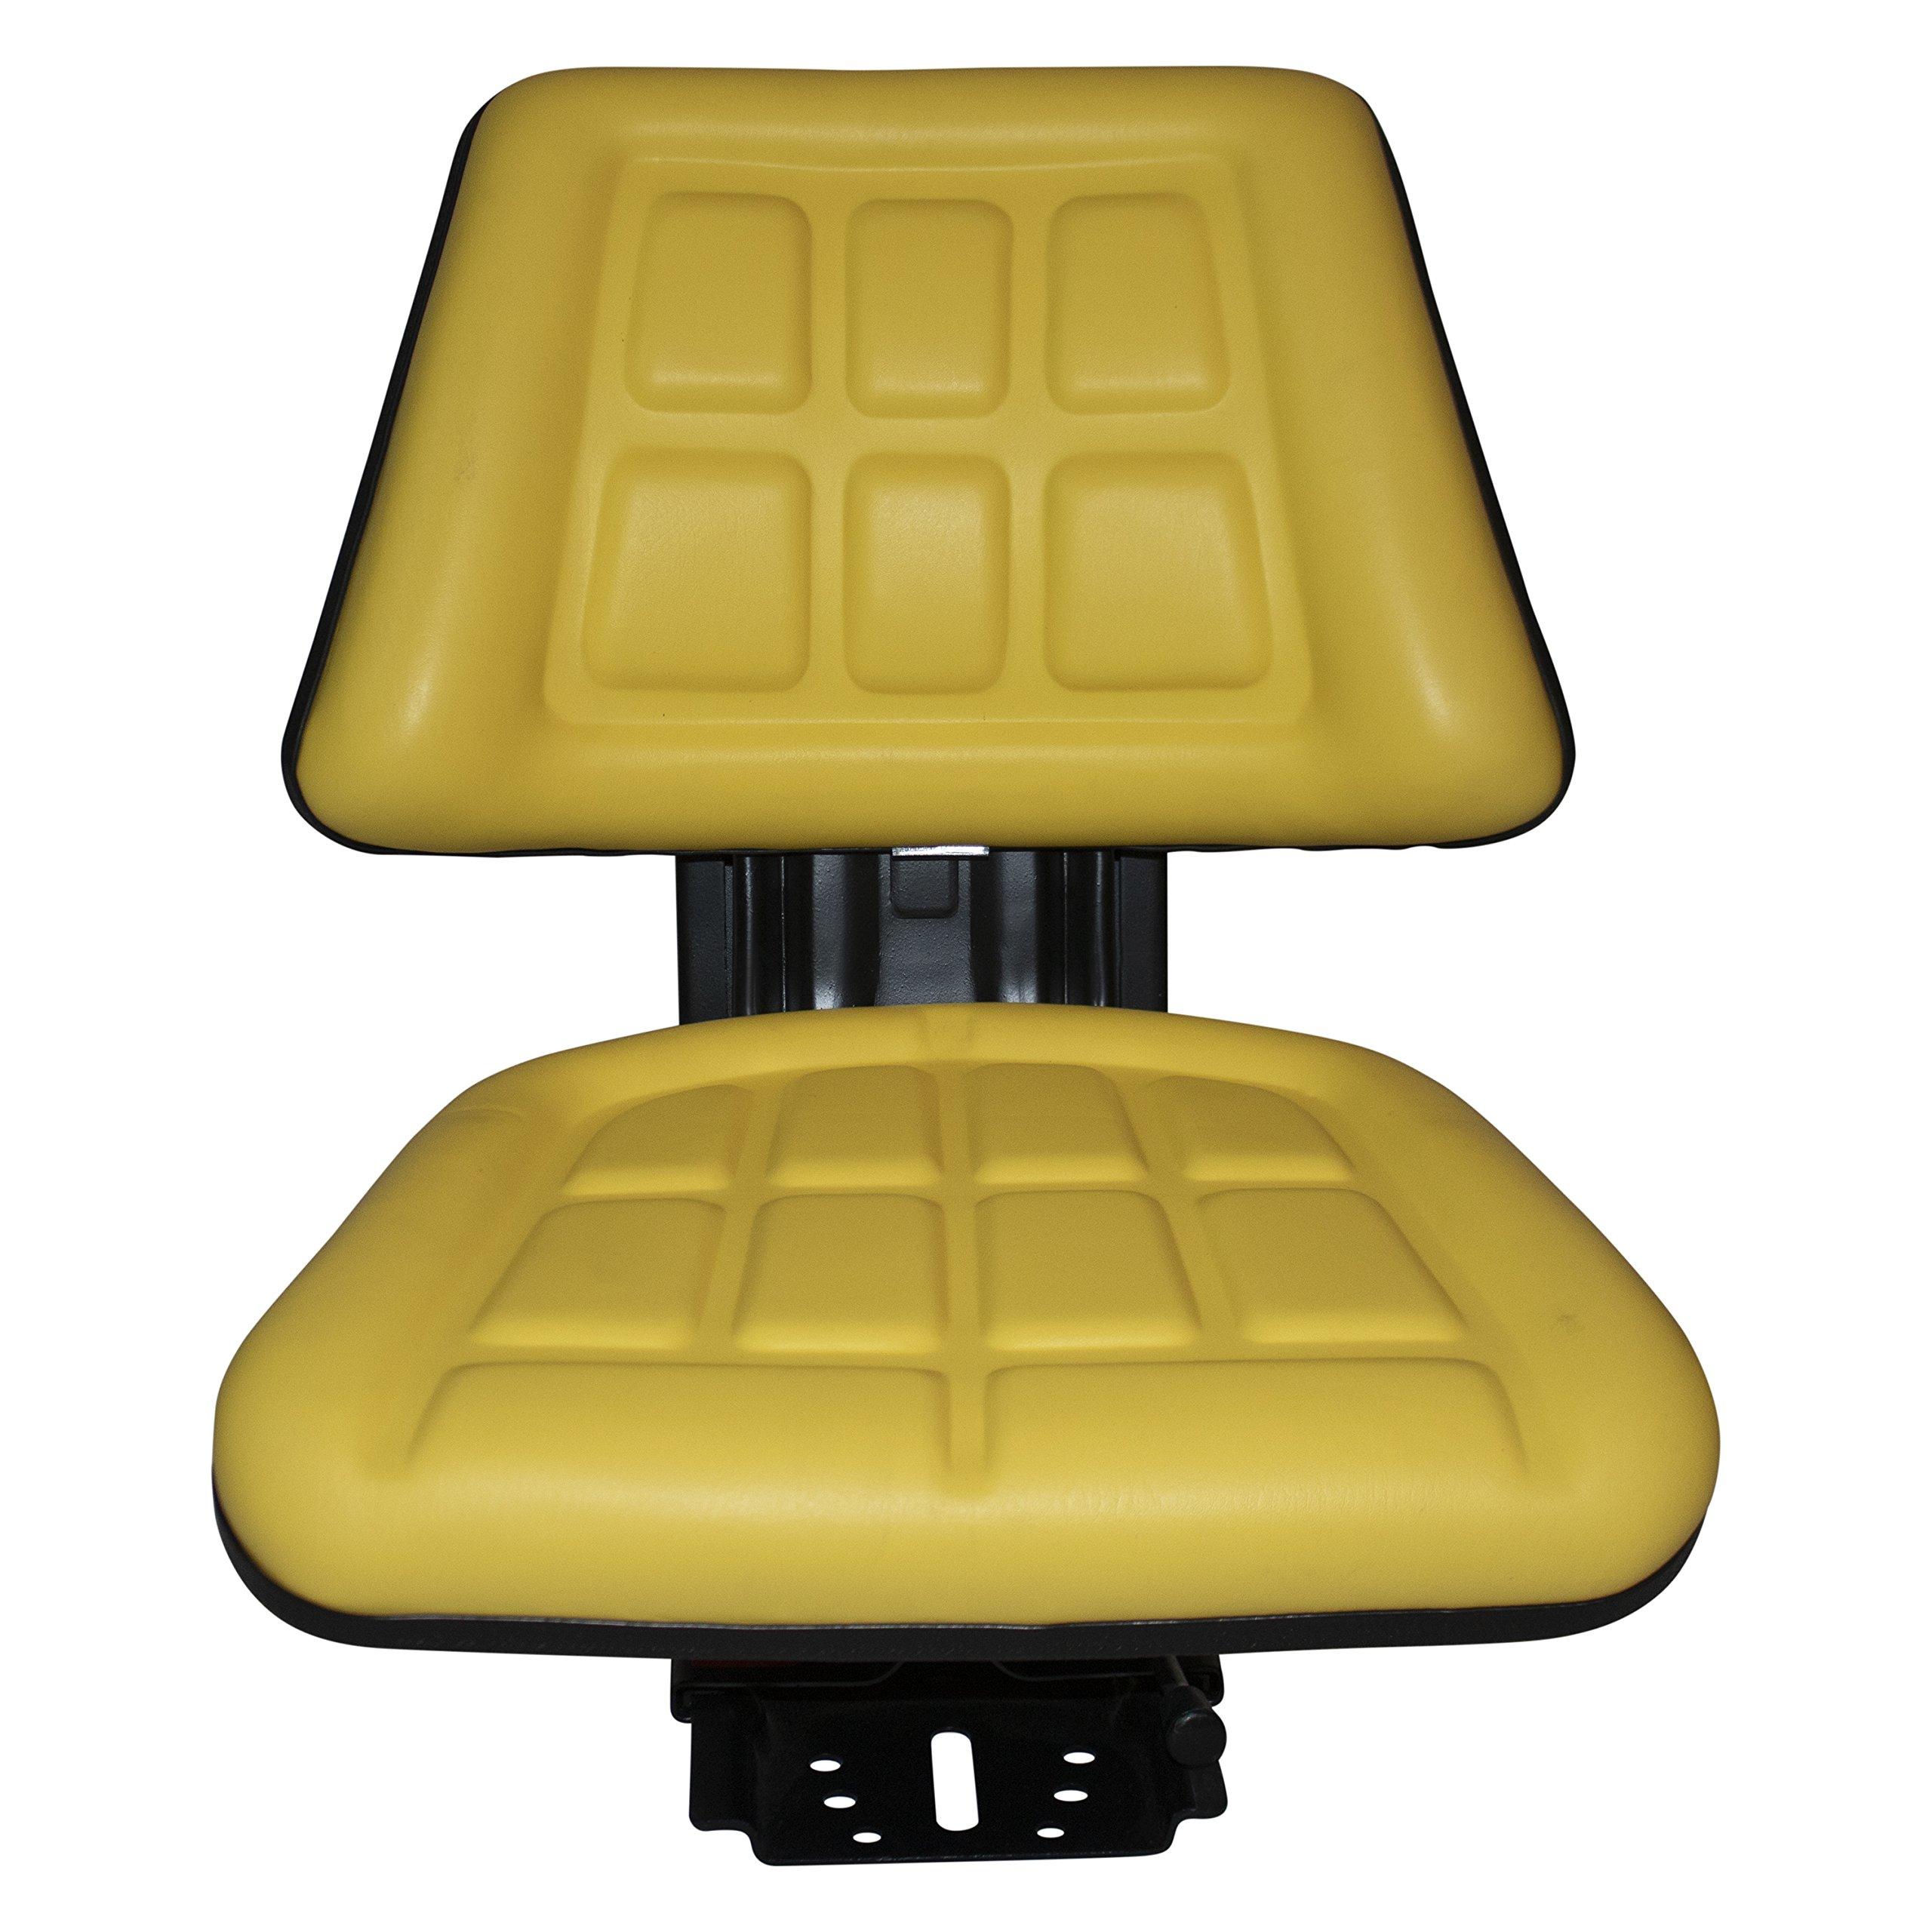 Yellow TRAC SEATS Brand TRIBACK Style Universal Tractor Suspension SEAT with TILT FITS John Deere 2350 2355 2440 (Same Day Shipping - GET IT Fast!! View Our Transit MAP) by TRAC SEATS